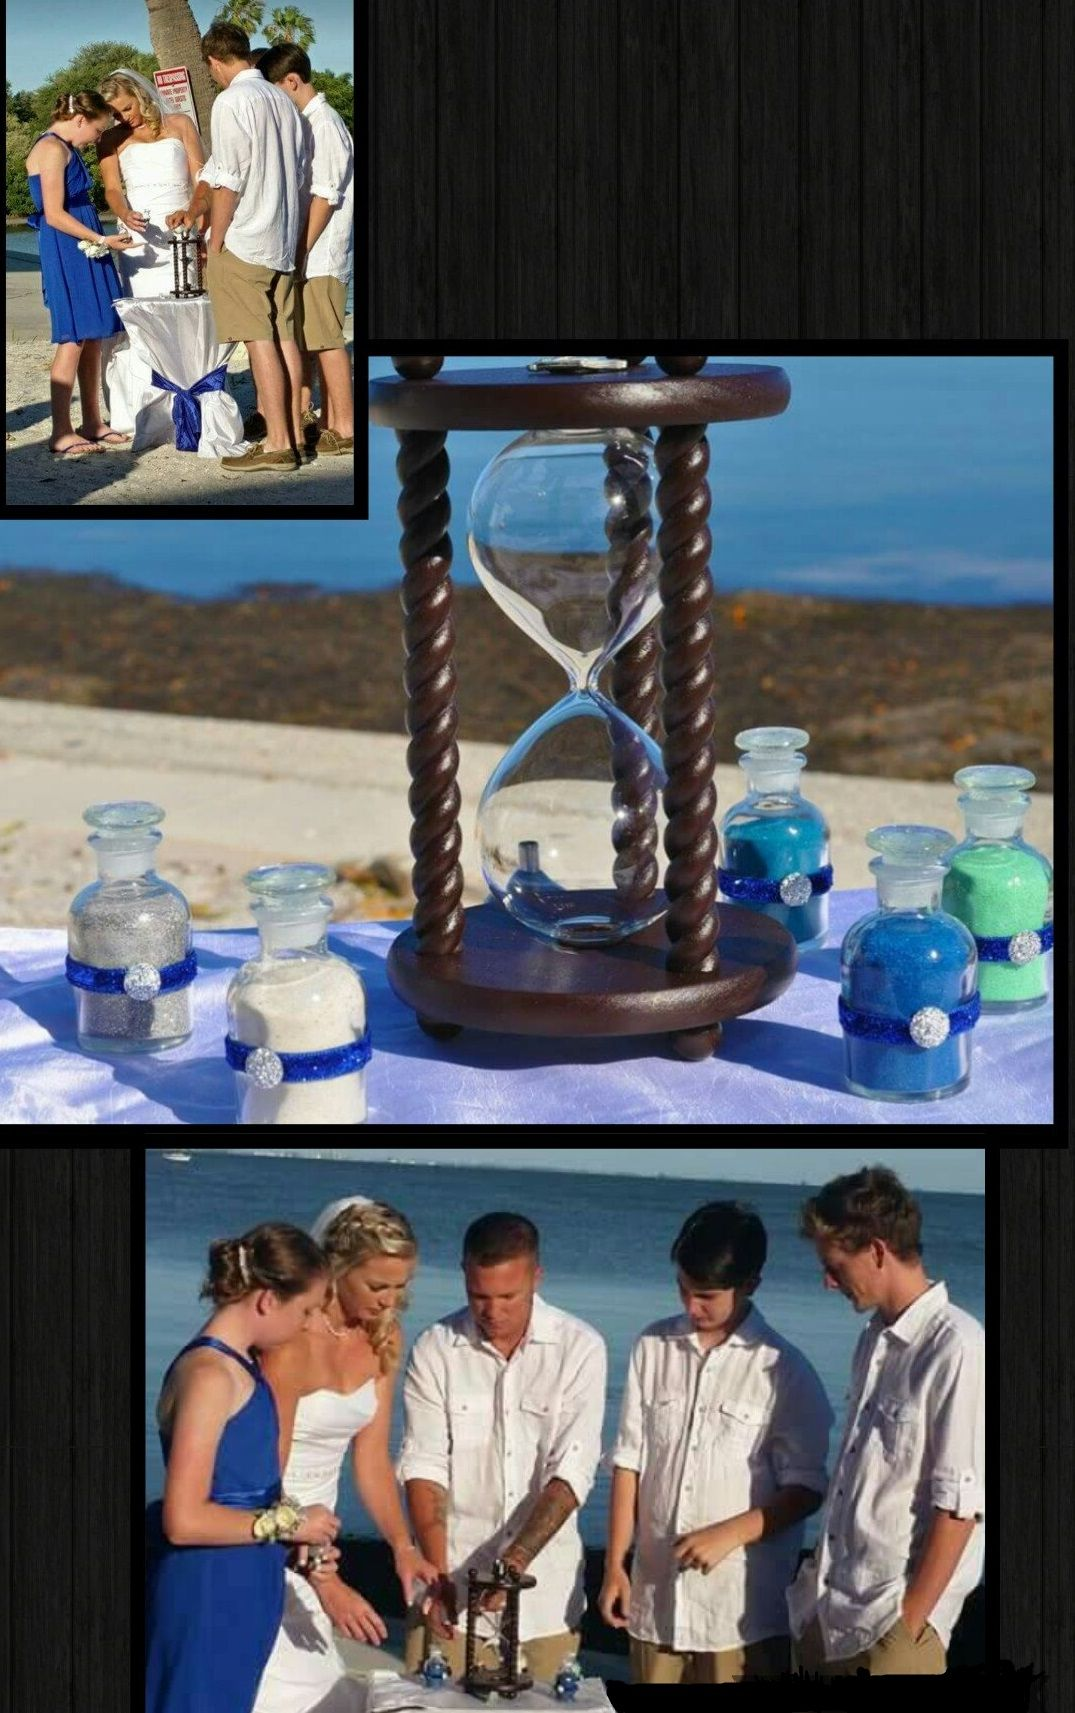 Heirloom Wedding Hourglass Family Unity Sand Ceremony At The Beach